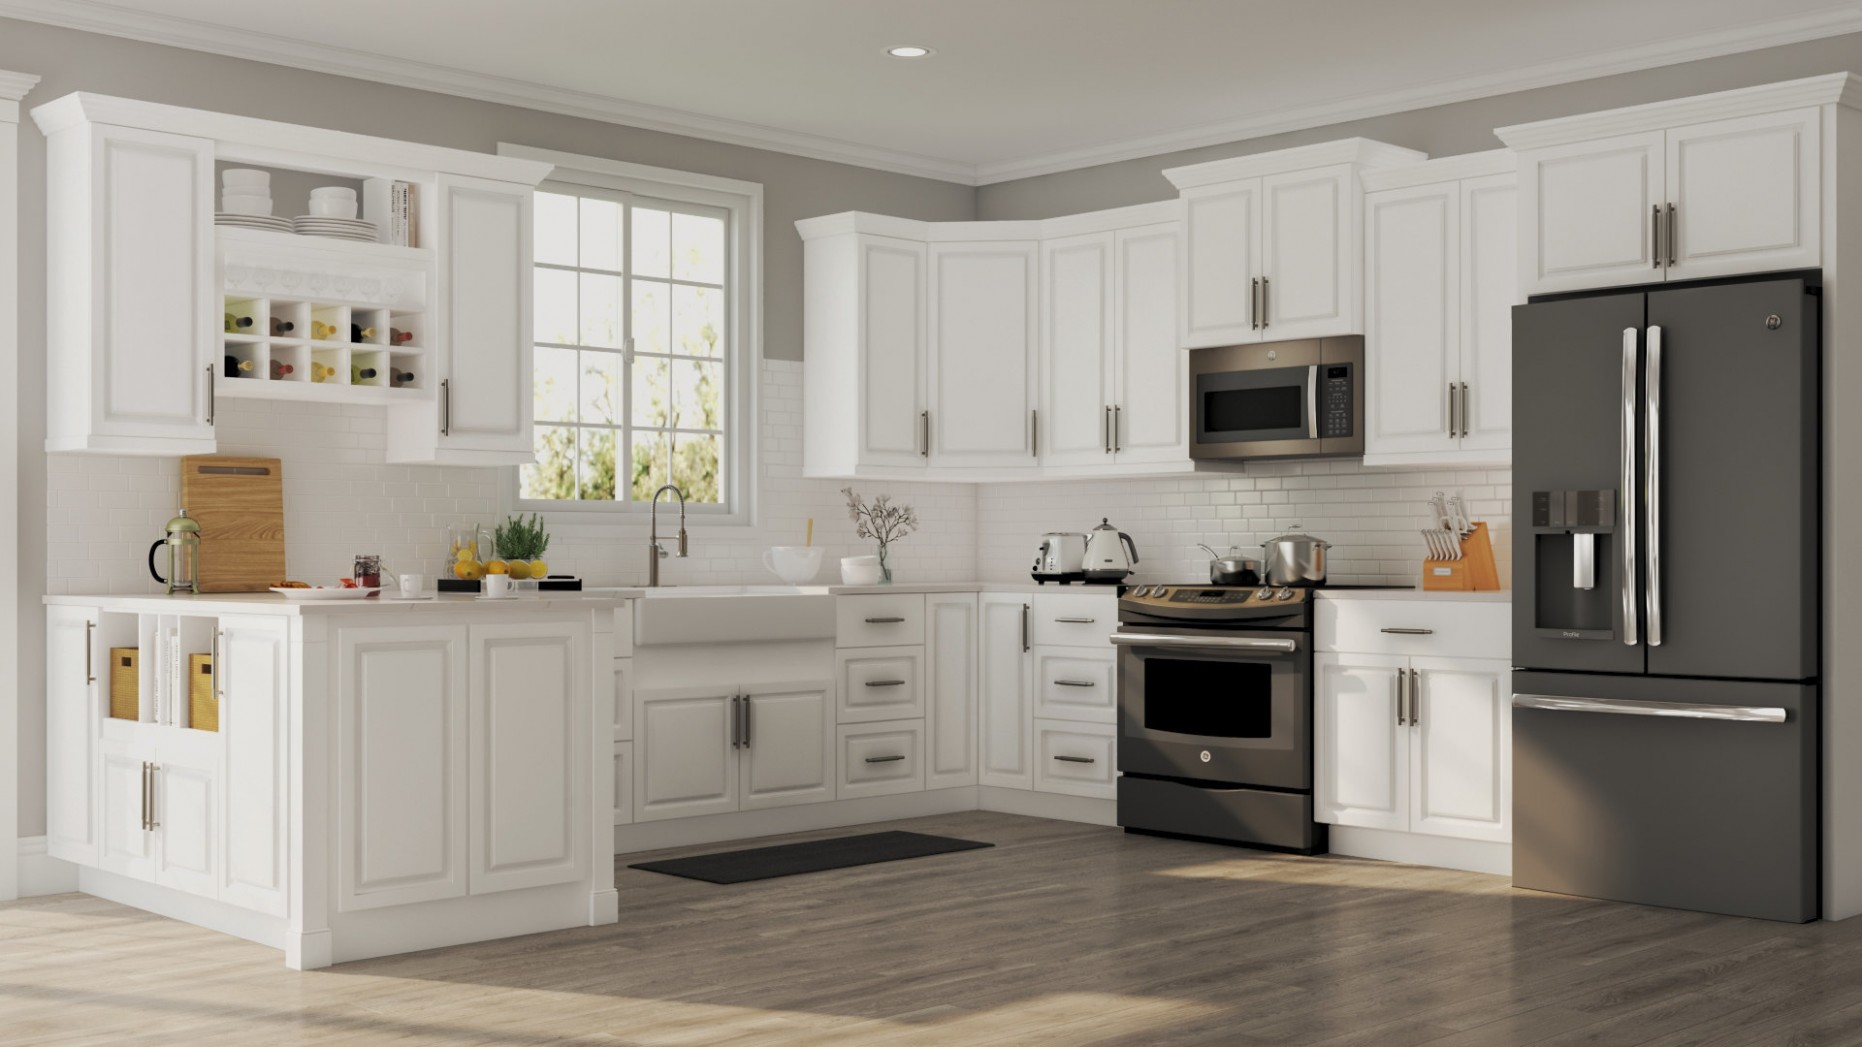 Hampton Wall Cabinets in White – Kitchen – The Home Depot - Buy Kitchen Wall Cabinets Online